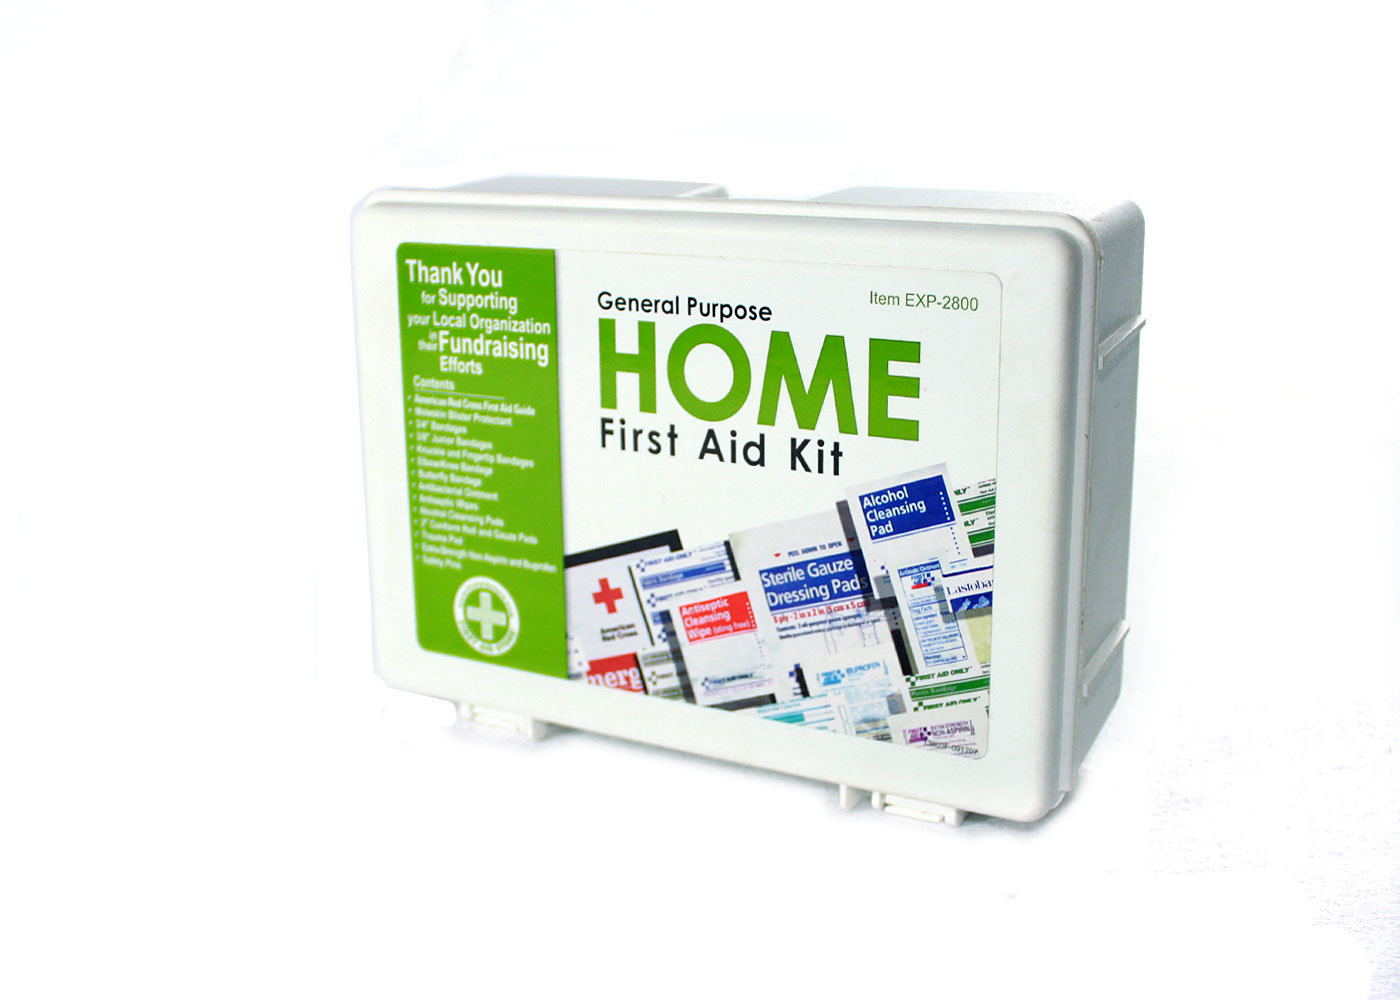 First aid for household poisoning